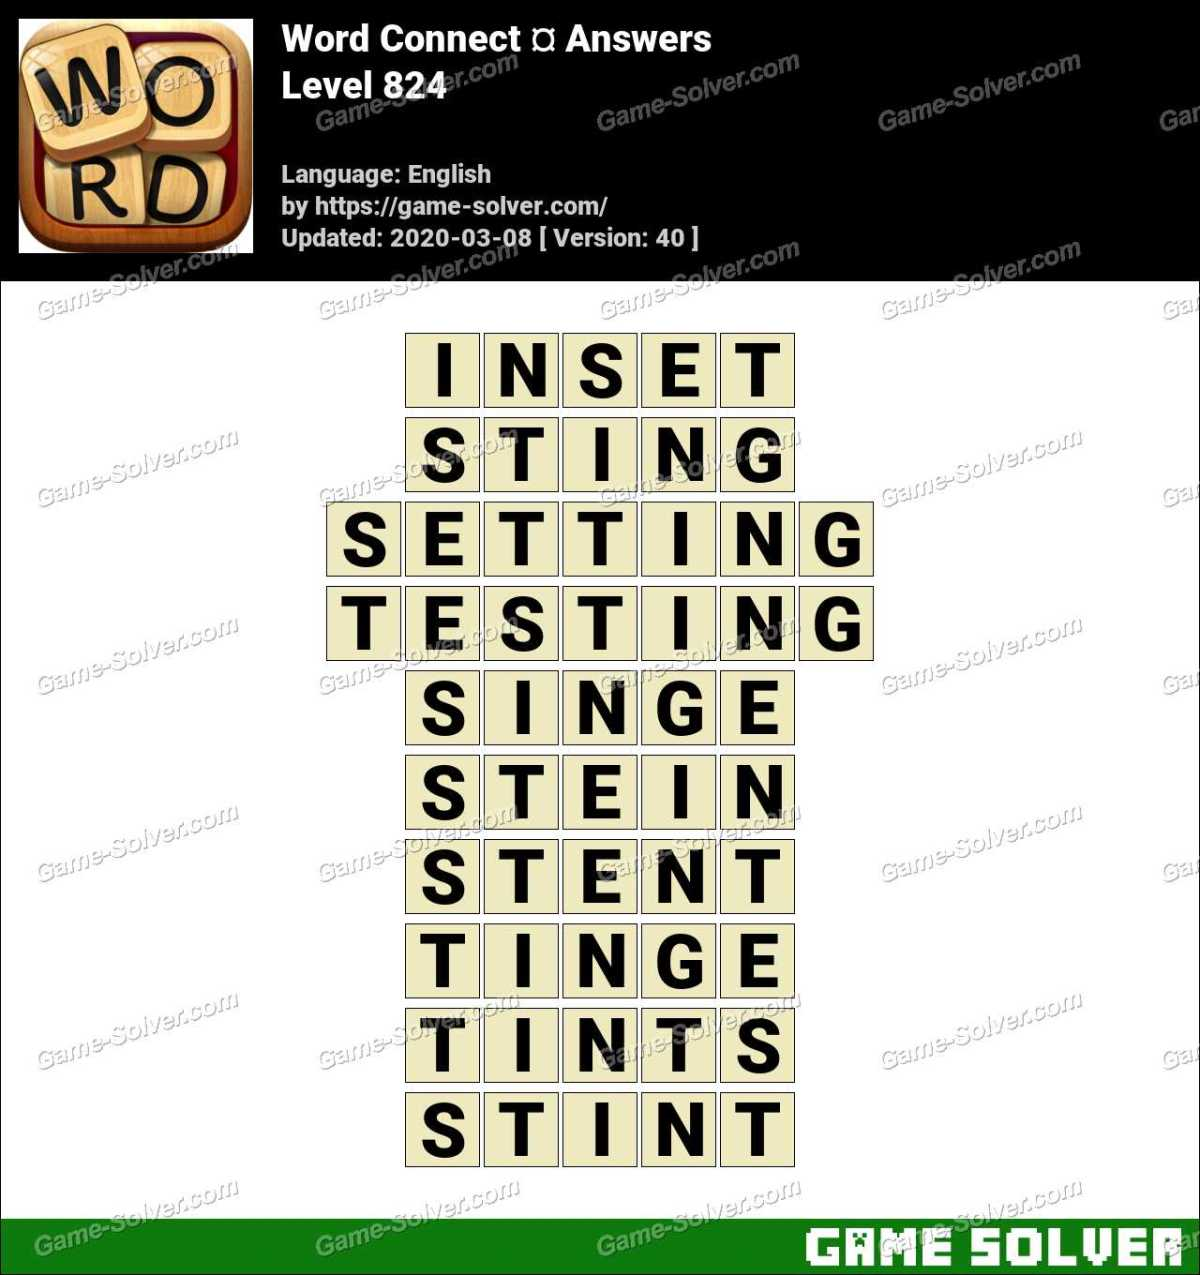 Word Connect Level 824 Answers